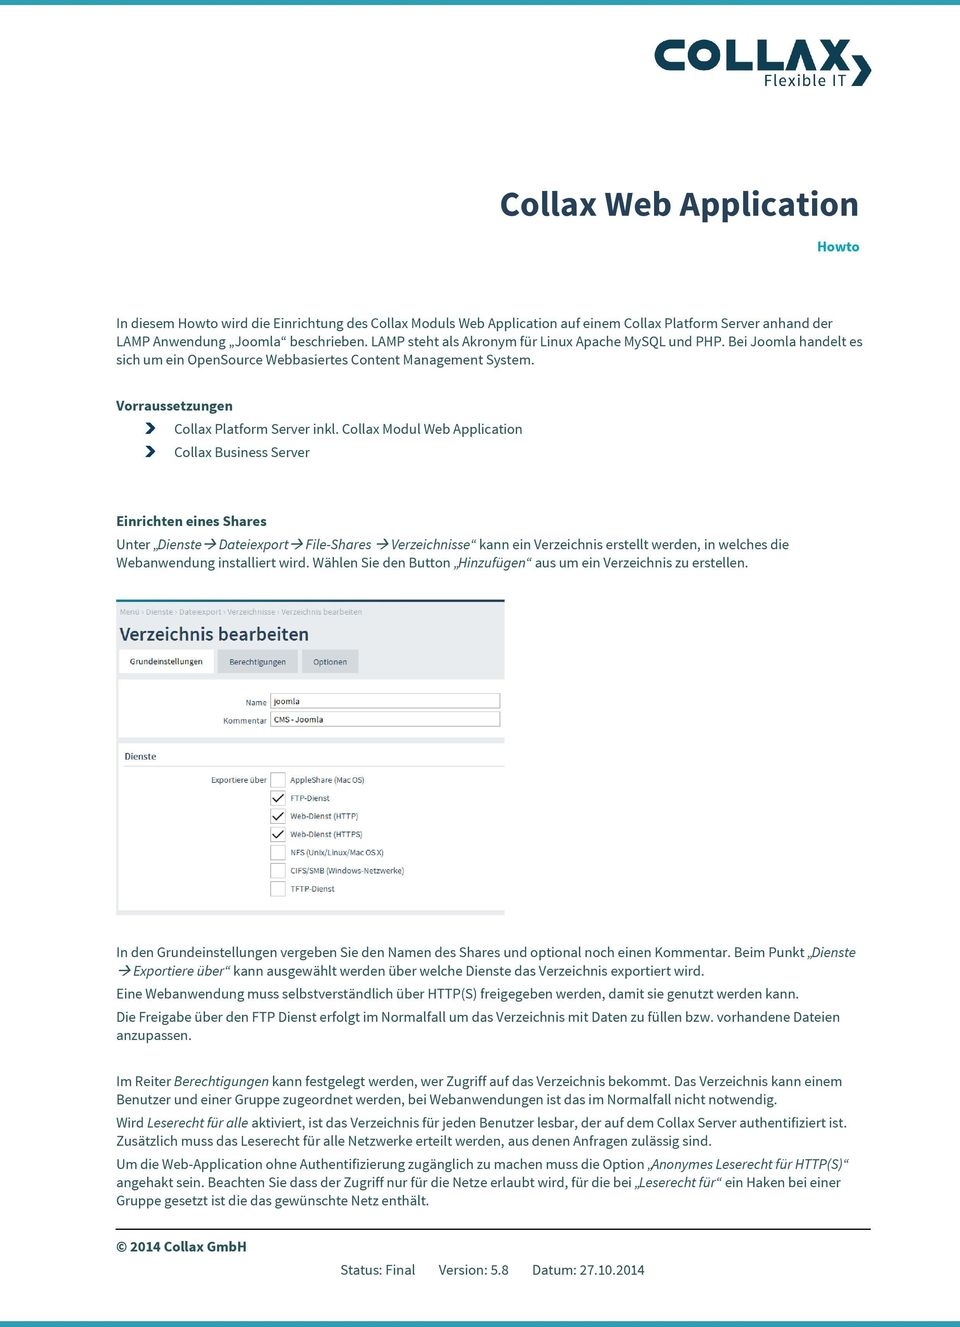 Collax Modul Web Application Collax Business Server Einrichten eines Shares Unter Dienste Dateiexport File-Shares Verzeichnisse kann ein Verzeichnis erstellt werden, in welches die Webanwendung